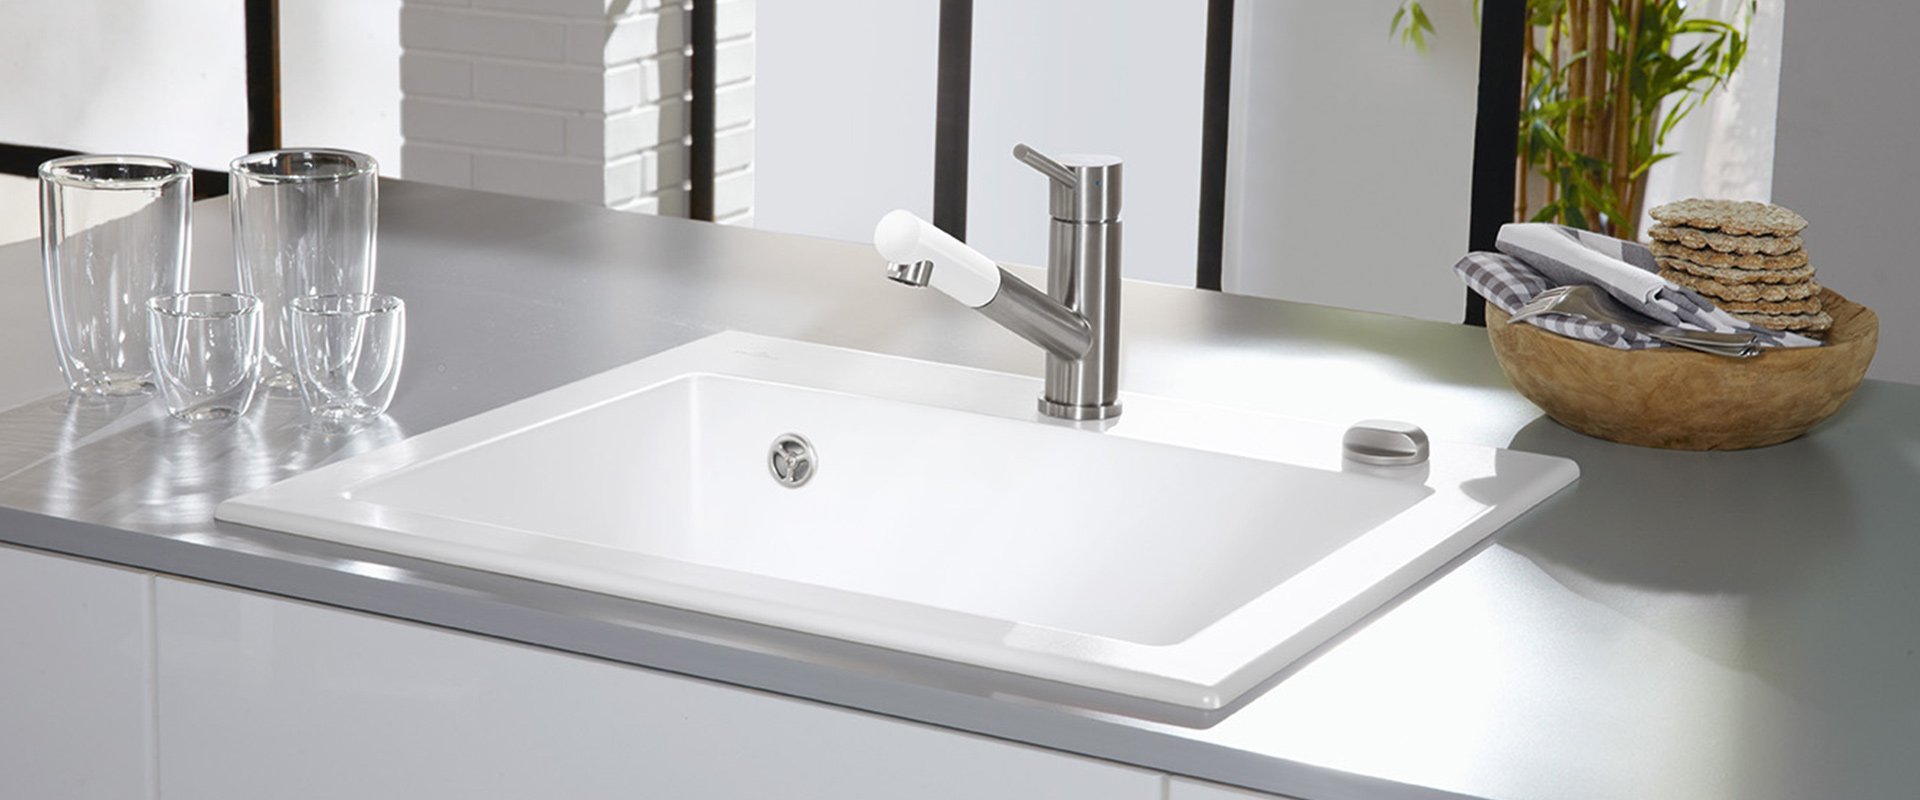 The advantages of Villeroy & Boch